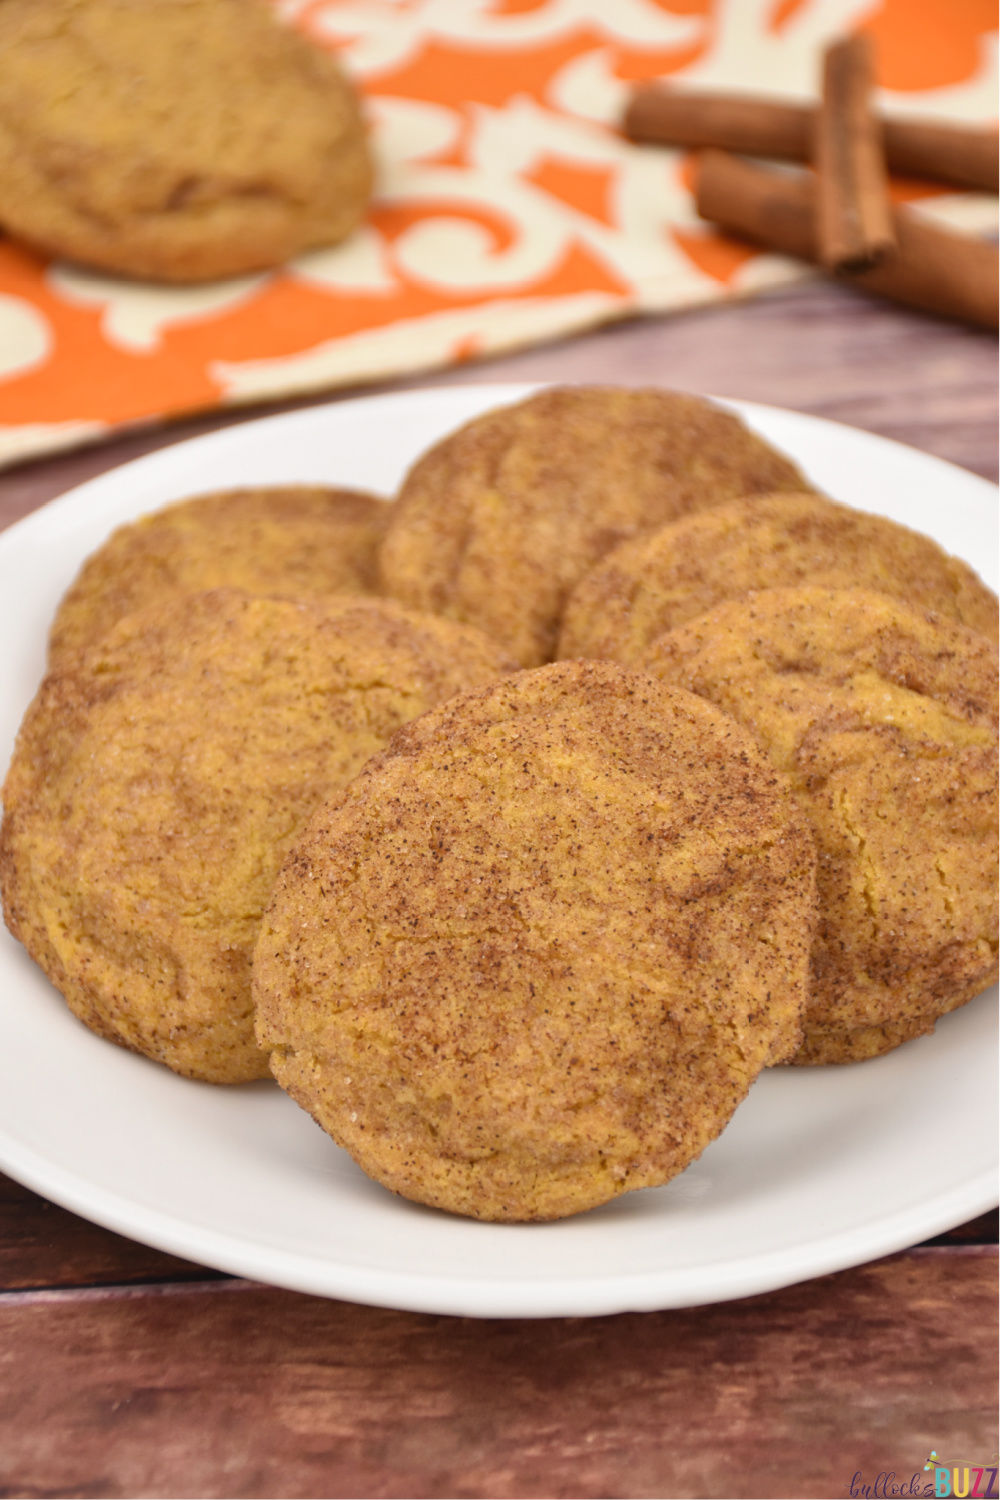 These Pumpkin Snickerdoodle Cookies are soft, chewy, and absolutely packed with delicious flavor! #recipe #snickerdoodles